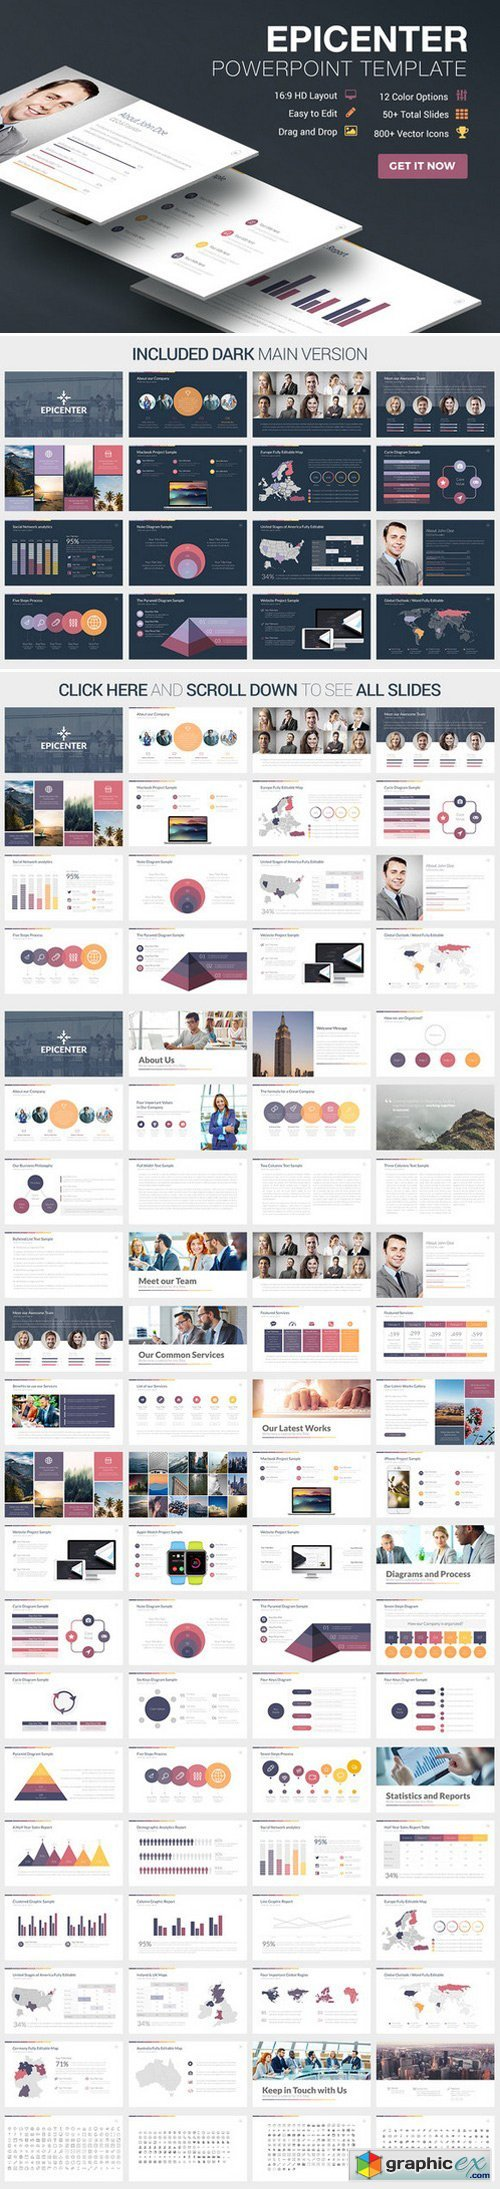 Epicenter PowerPoint Template » Free Download Vector Stock